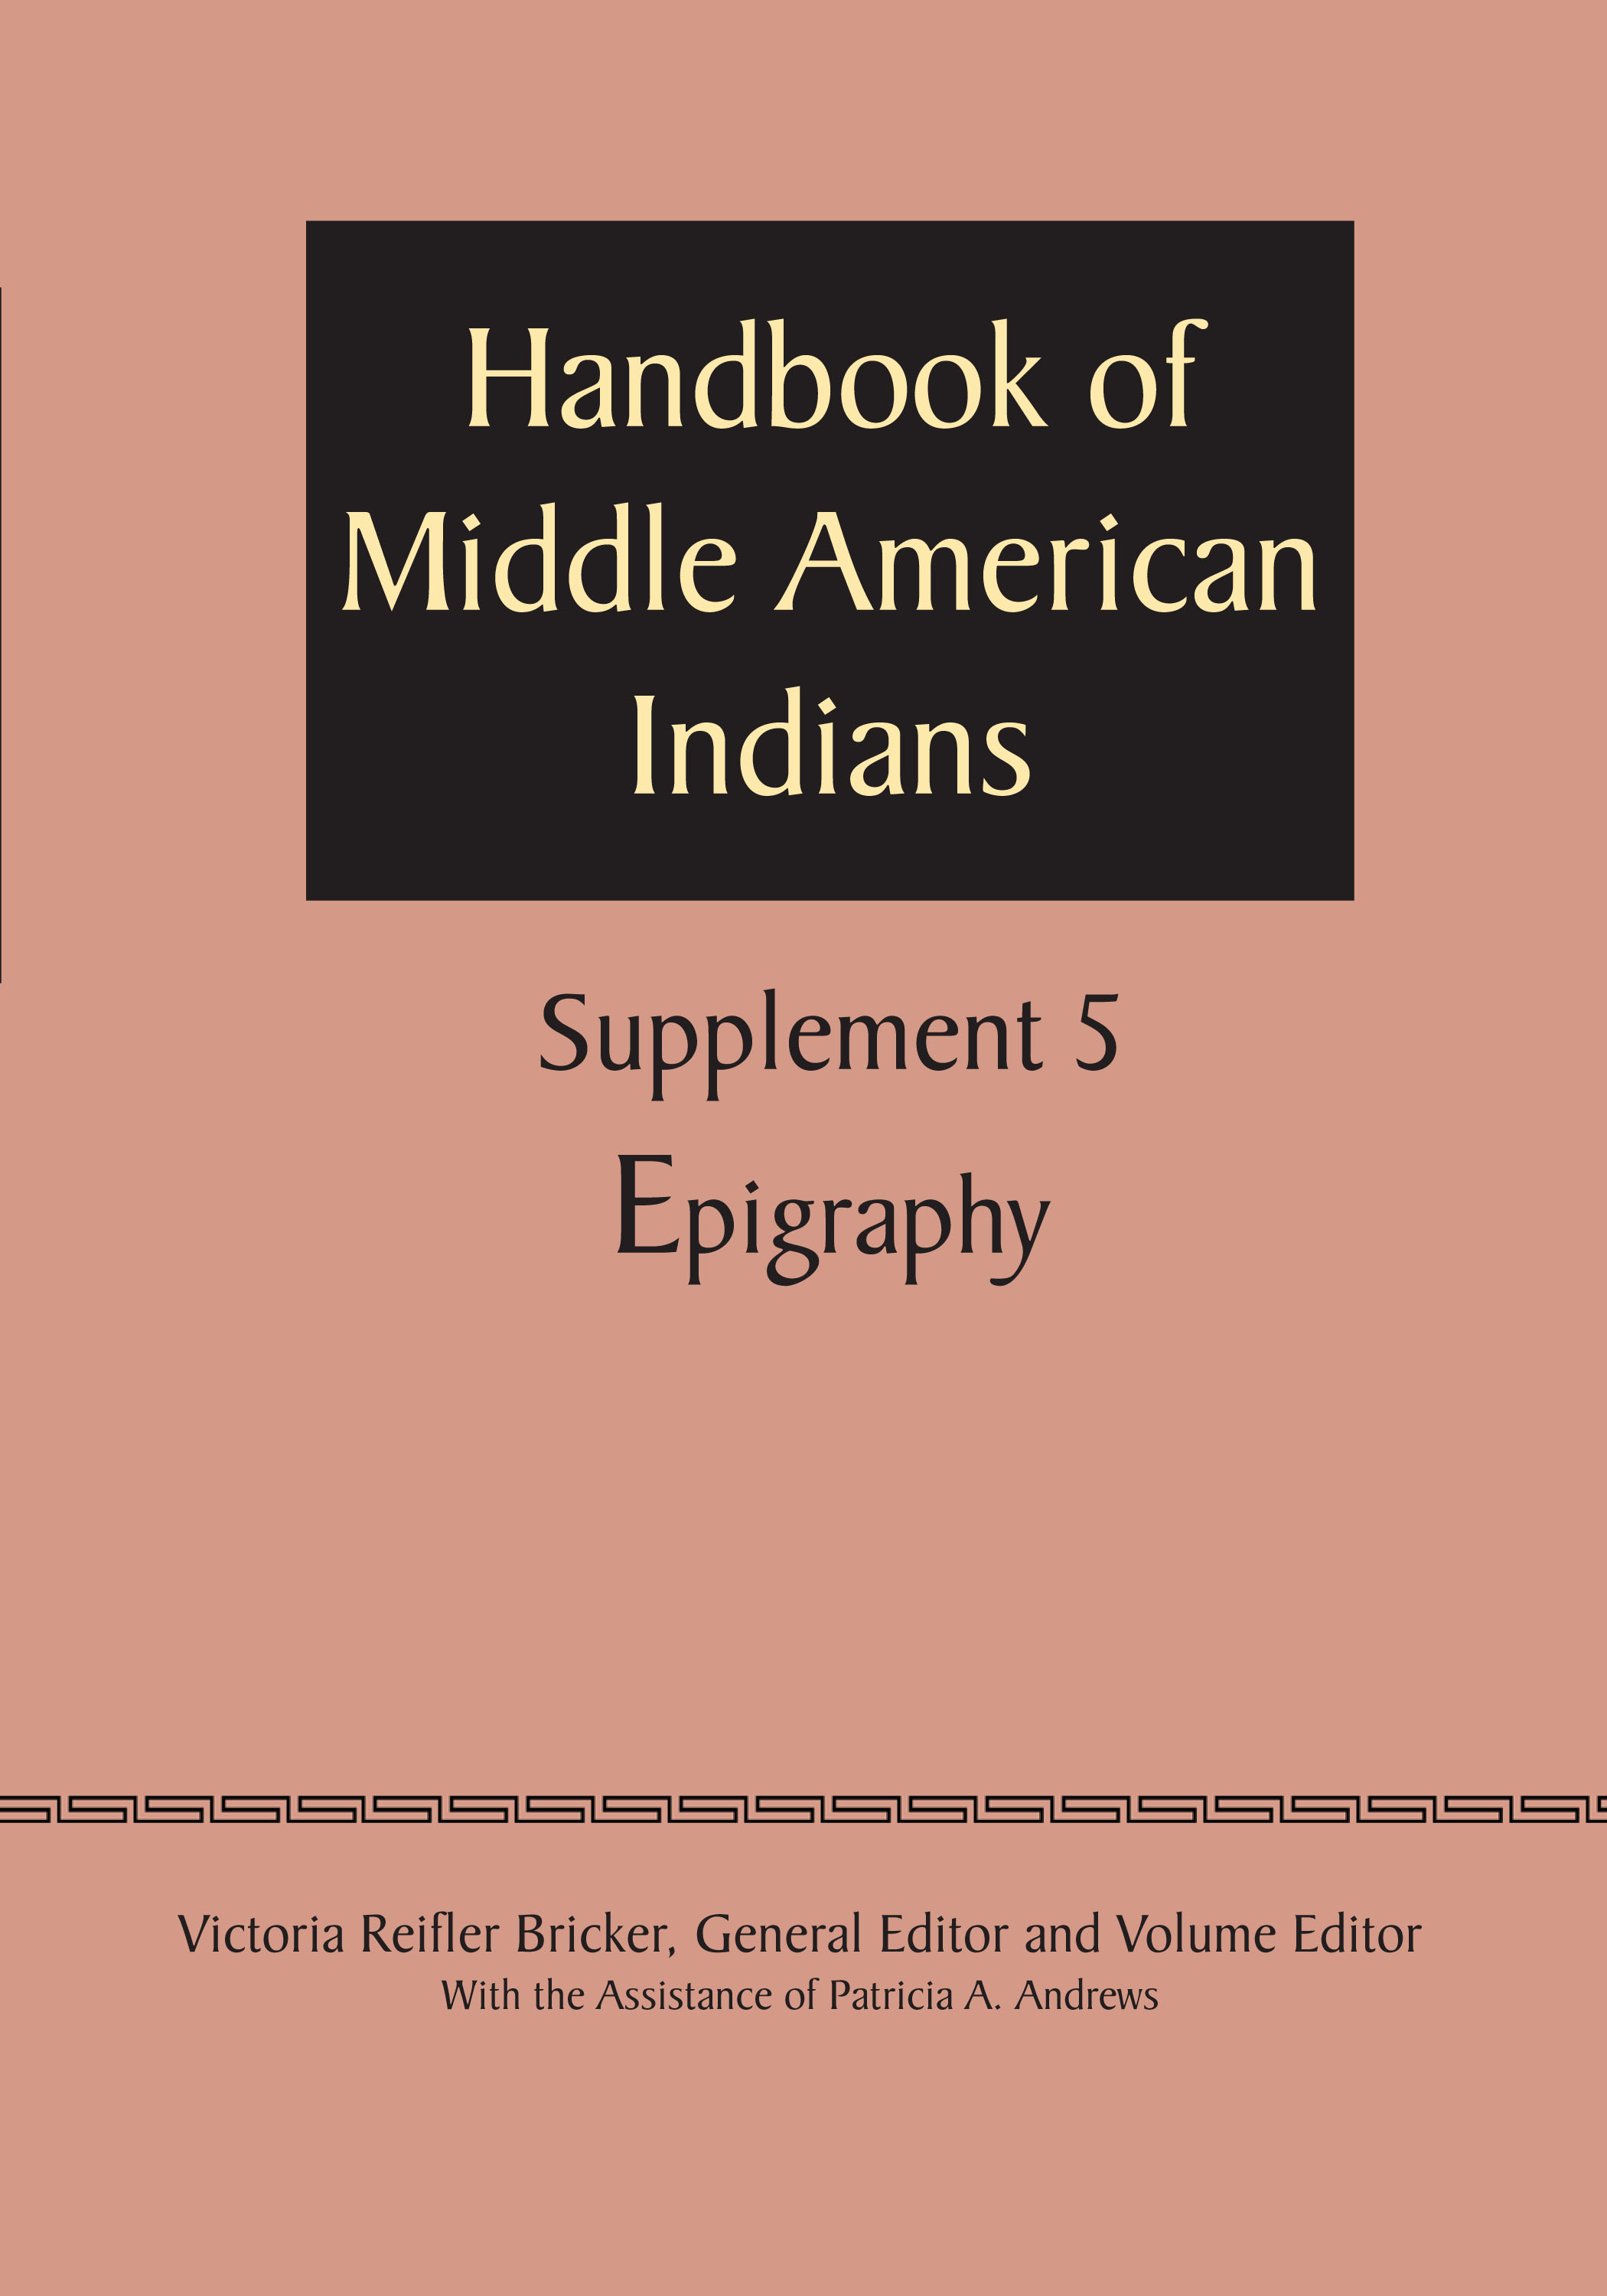 supplement to the handbook of middle american indians vol 5